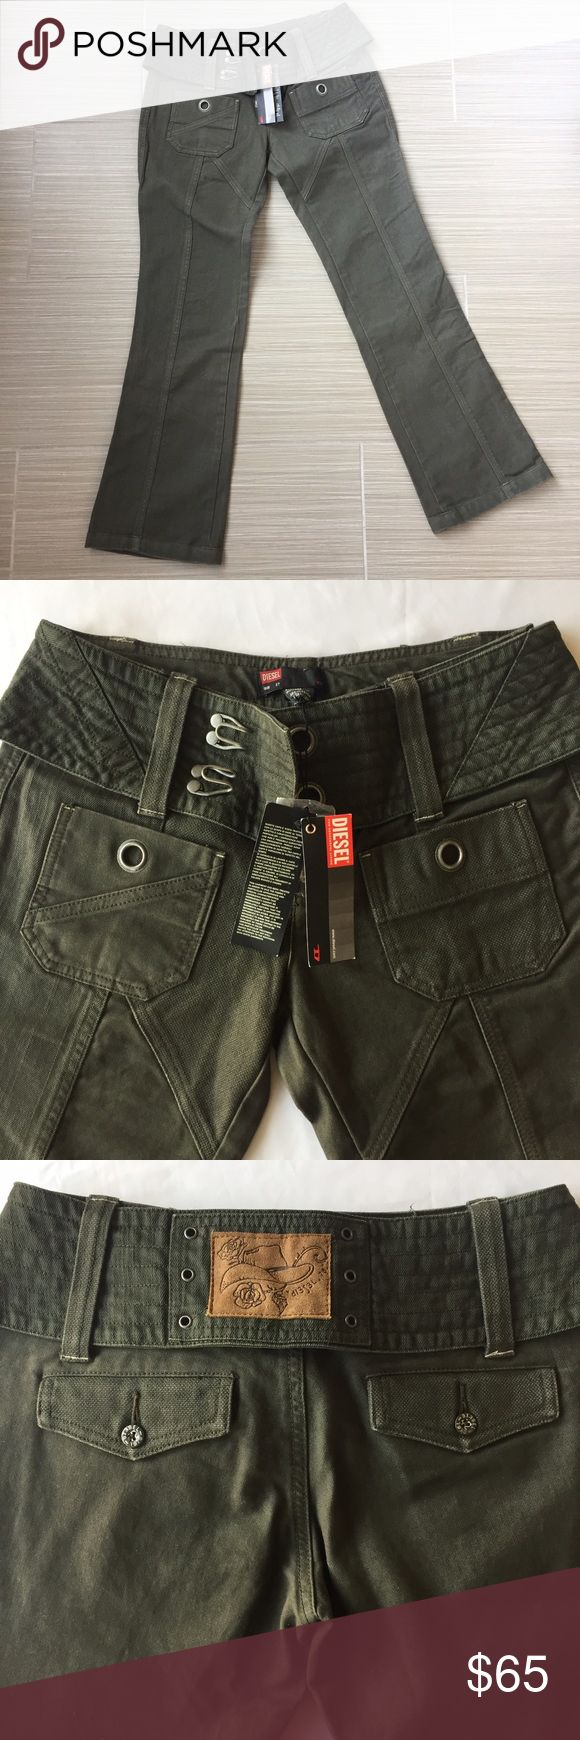 Diesel Pants Olive green utility pants. Purchased out of the country. Diesel Pants Boot Cut & Flare